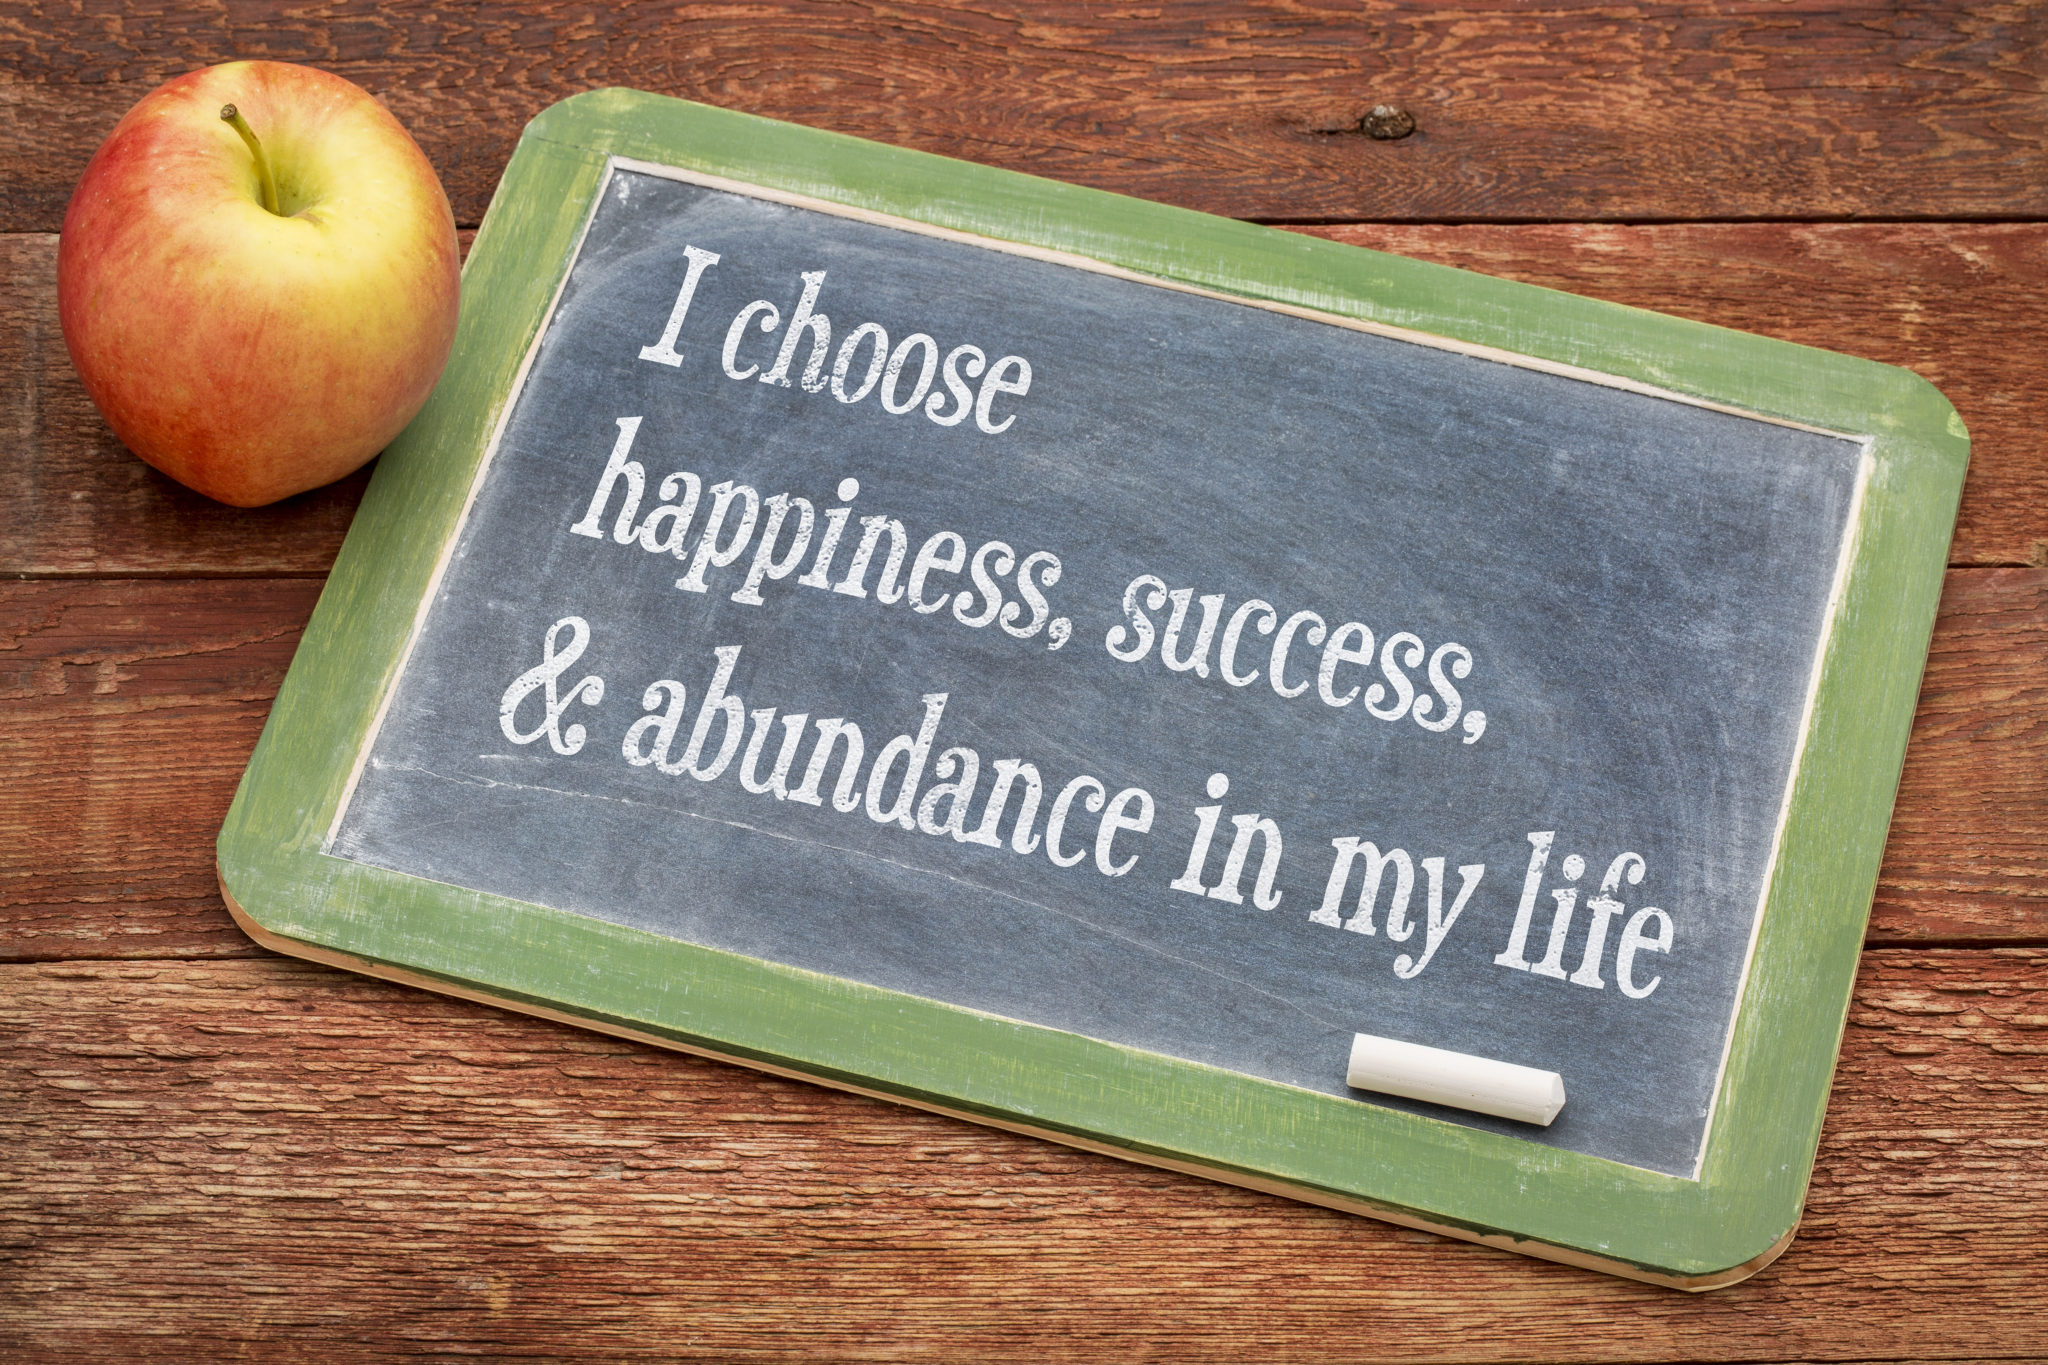 I choose happiness, success and abundance in my life